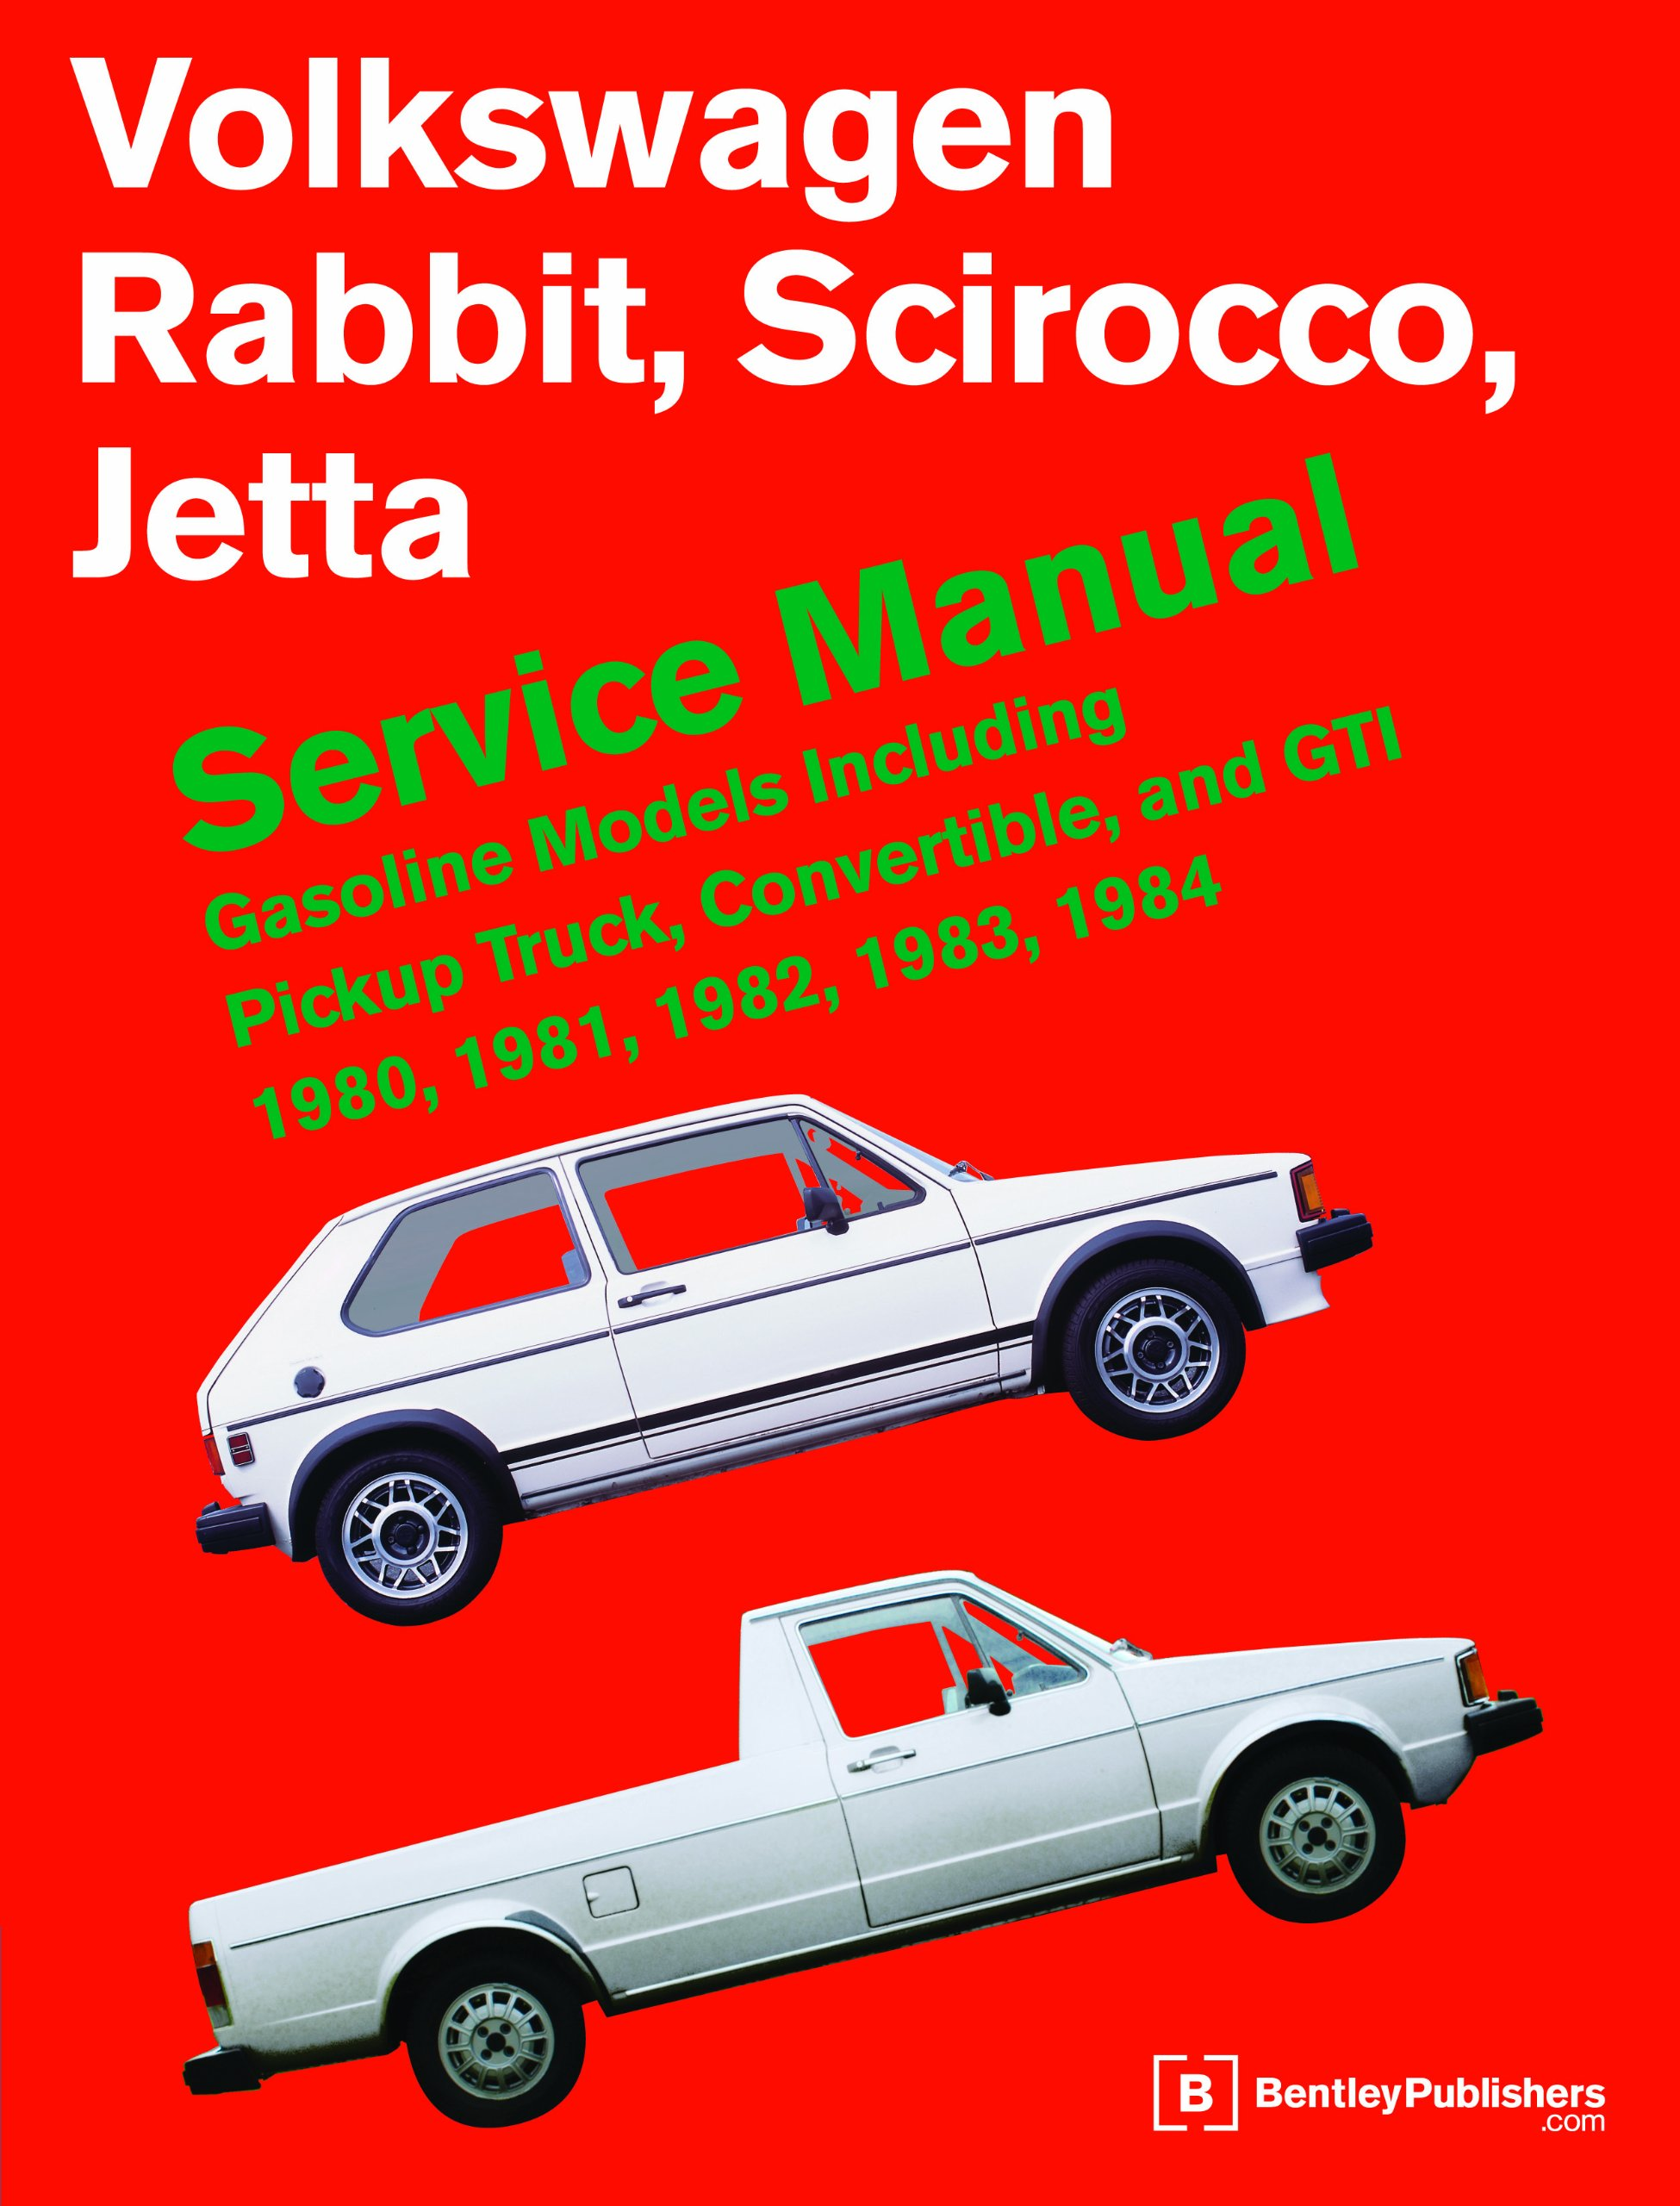 Volkswagen Rabbit, Scirocco, Jetta Service Manual: 1980-1984: Bentley  Publishers: 9780837617046: Amazon.com: Books